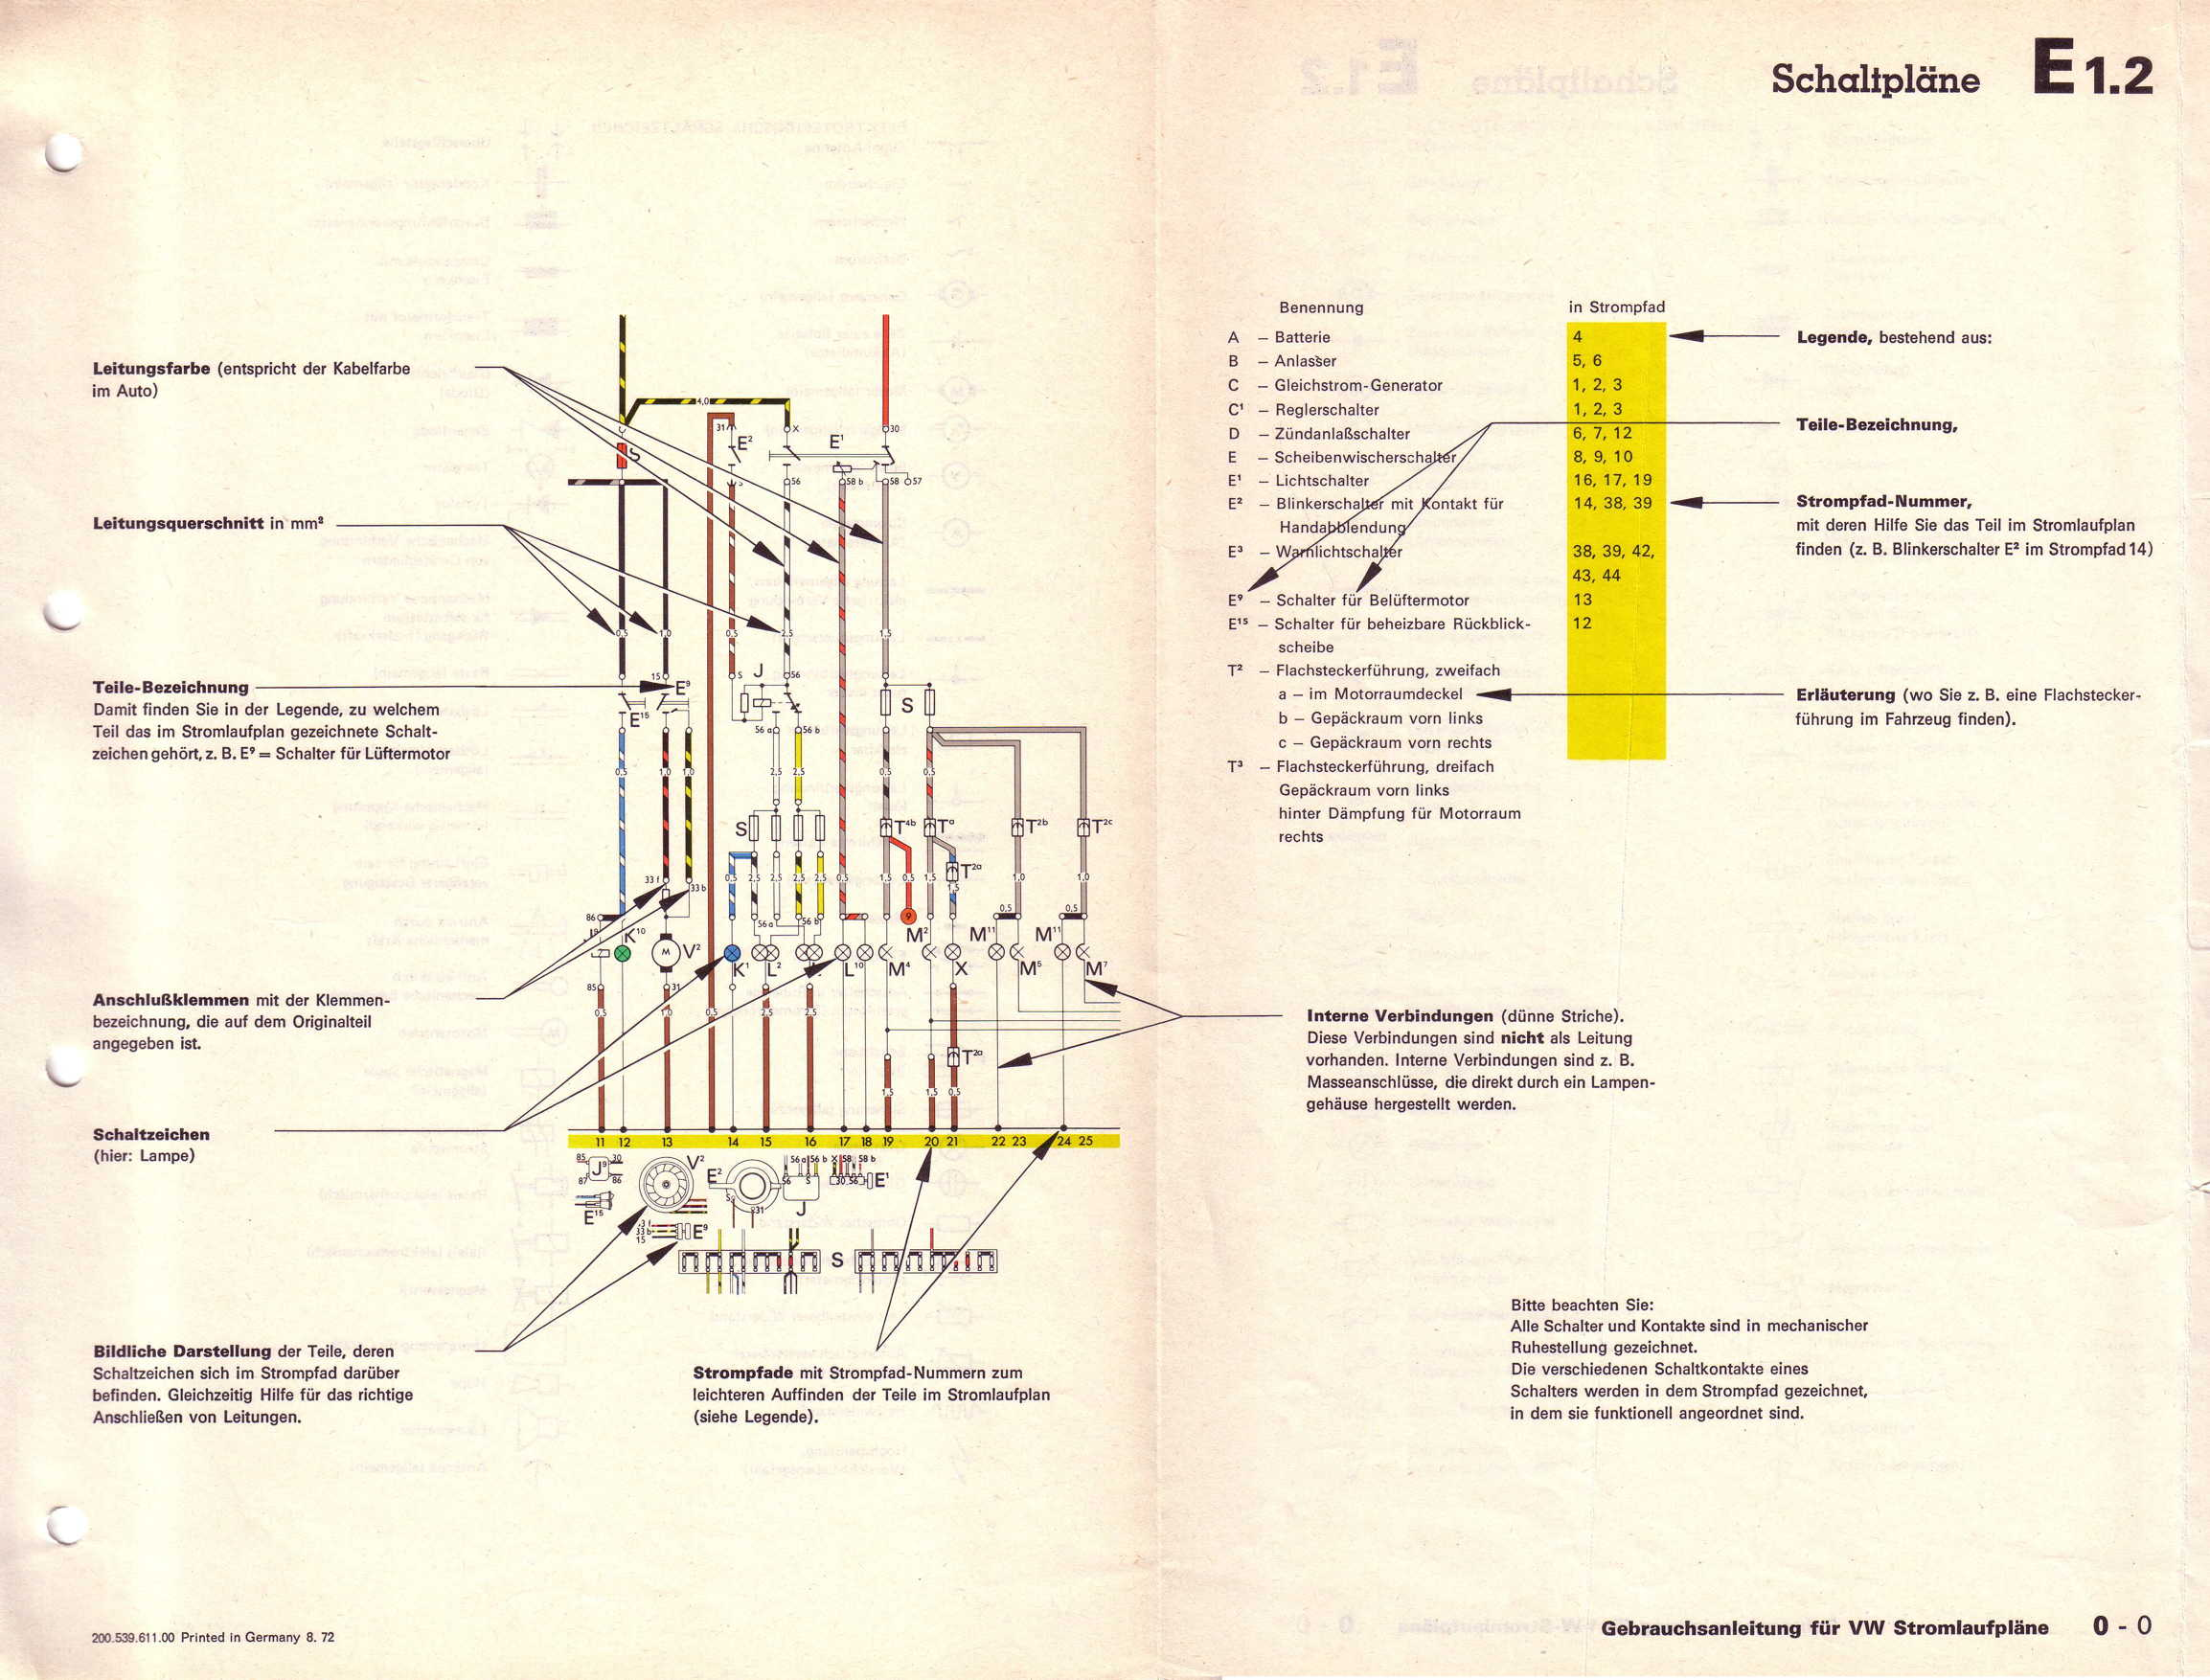 1972 08 vw instructions wiring diagram?resize\=665%2C506 bad boy horn wiring diagram bad boy parts diagram, bad boy bad boy mower wiring diagram at creativeand.co